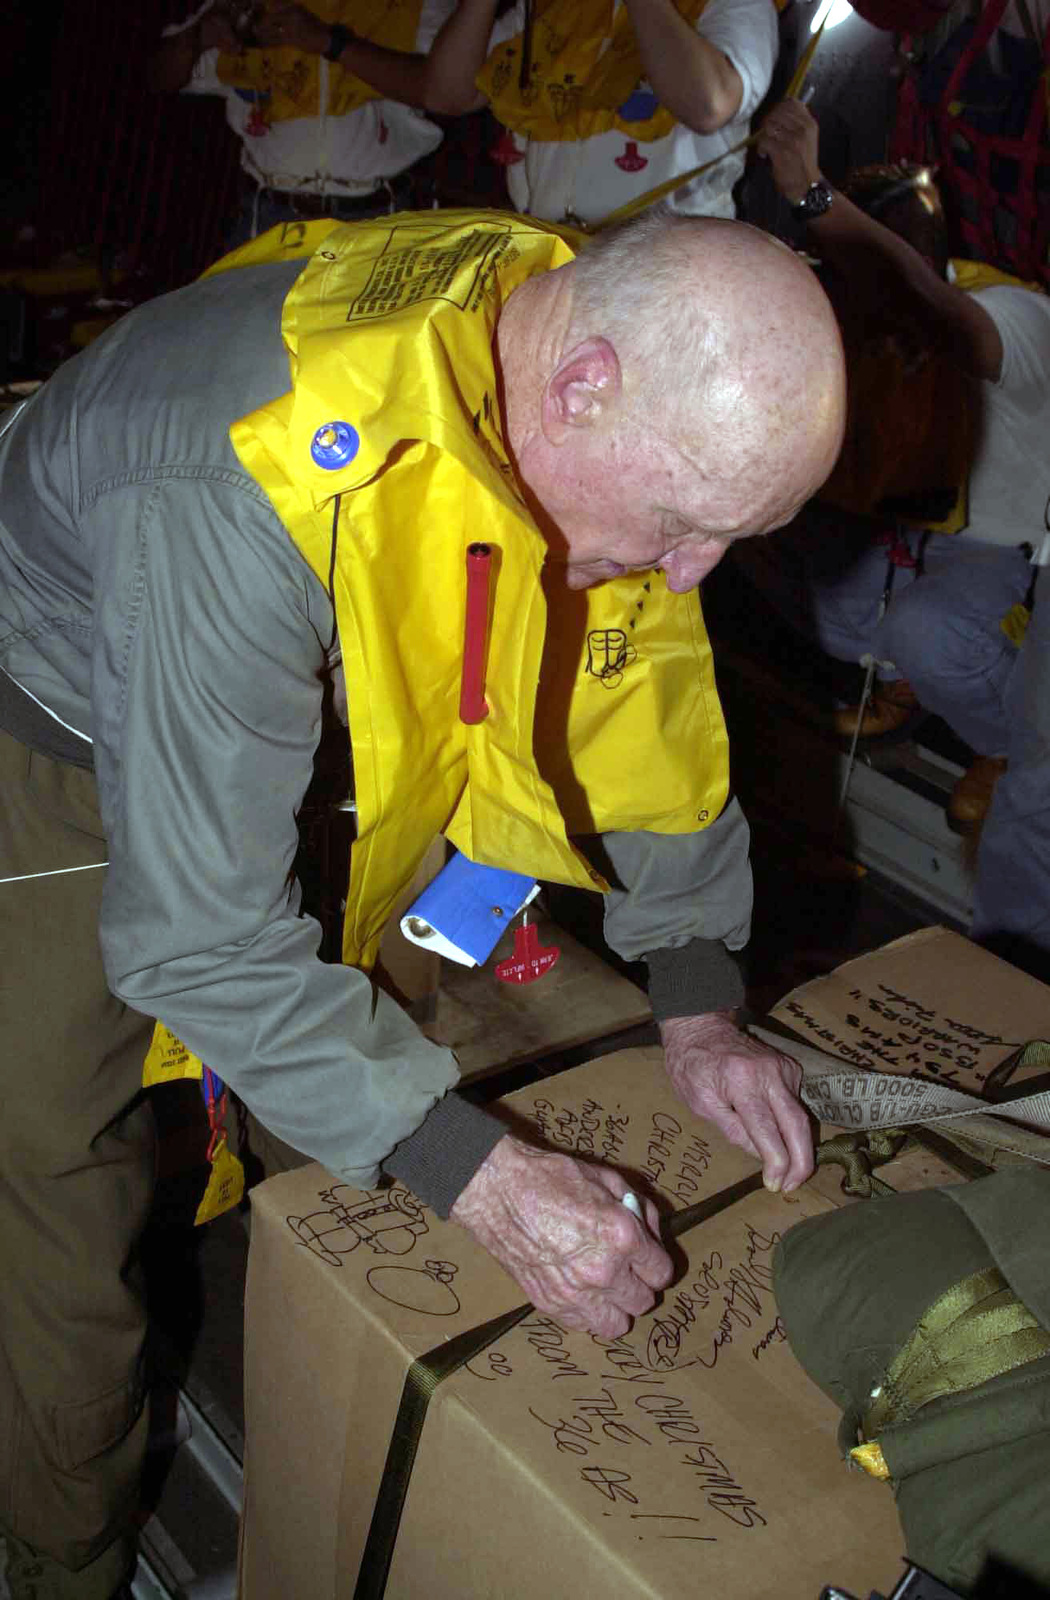 On board a US Air Force (USAF) C-130 Hercules from Yokota Air Base (AB), Japan, retired USAF Colonel (COL) Gail Halvorsen, the Candy Bomber, writes a holiday greeting on a box of supplies to be dropped during the first flight of the 50th anniversary flights called the Christmas Drop on Dec. 21 2002